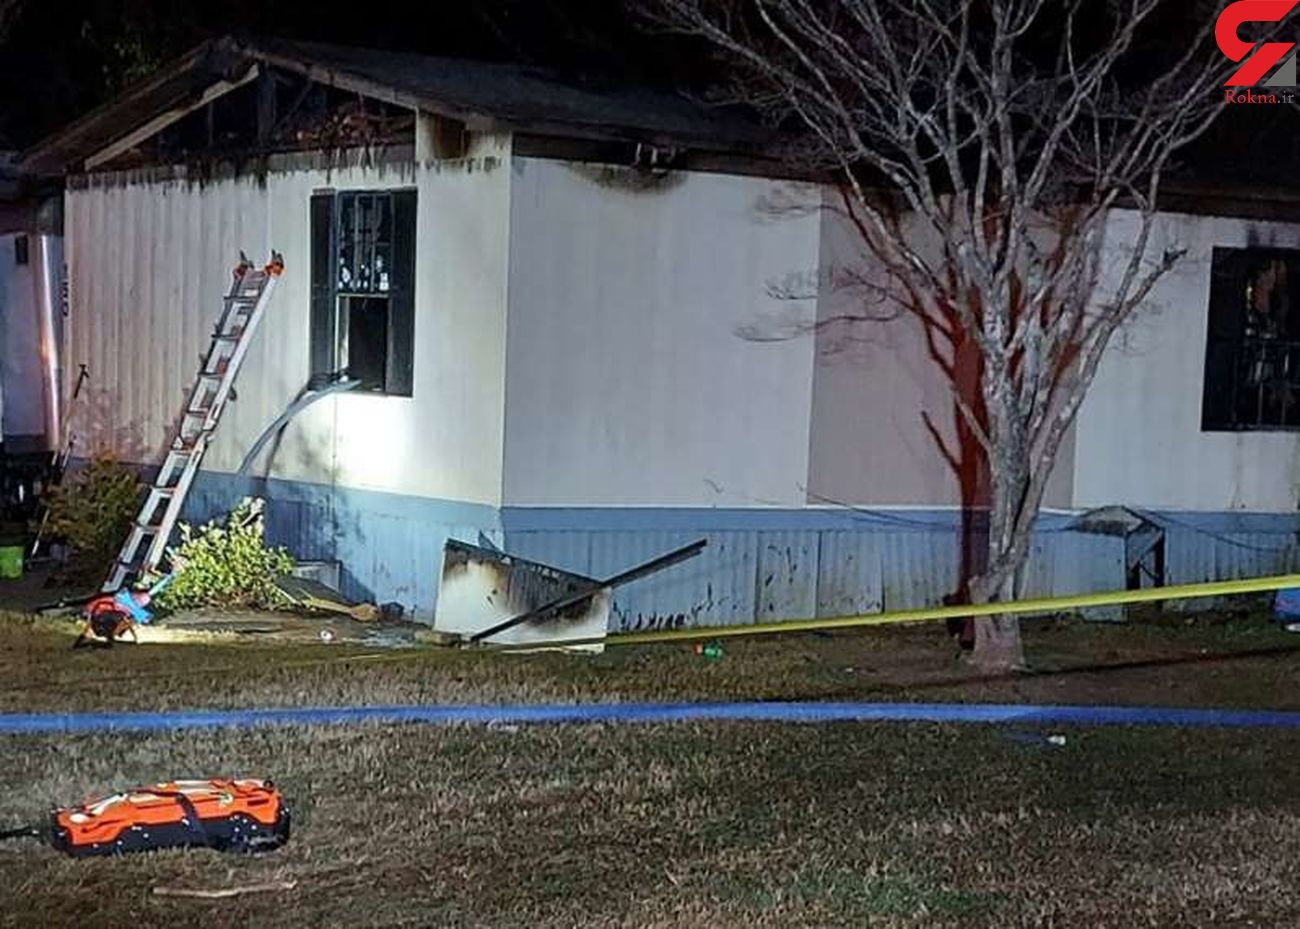 Family of 4, Including 3 Children, Killed in Georgia Mobile Home Fire